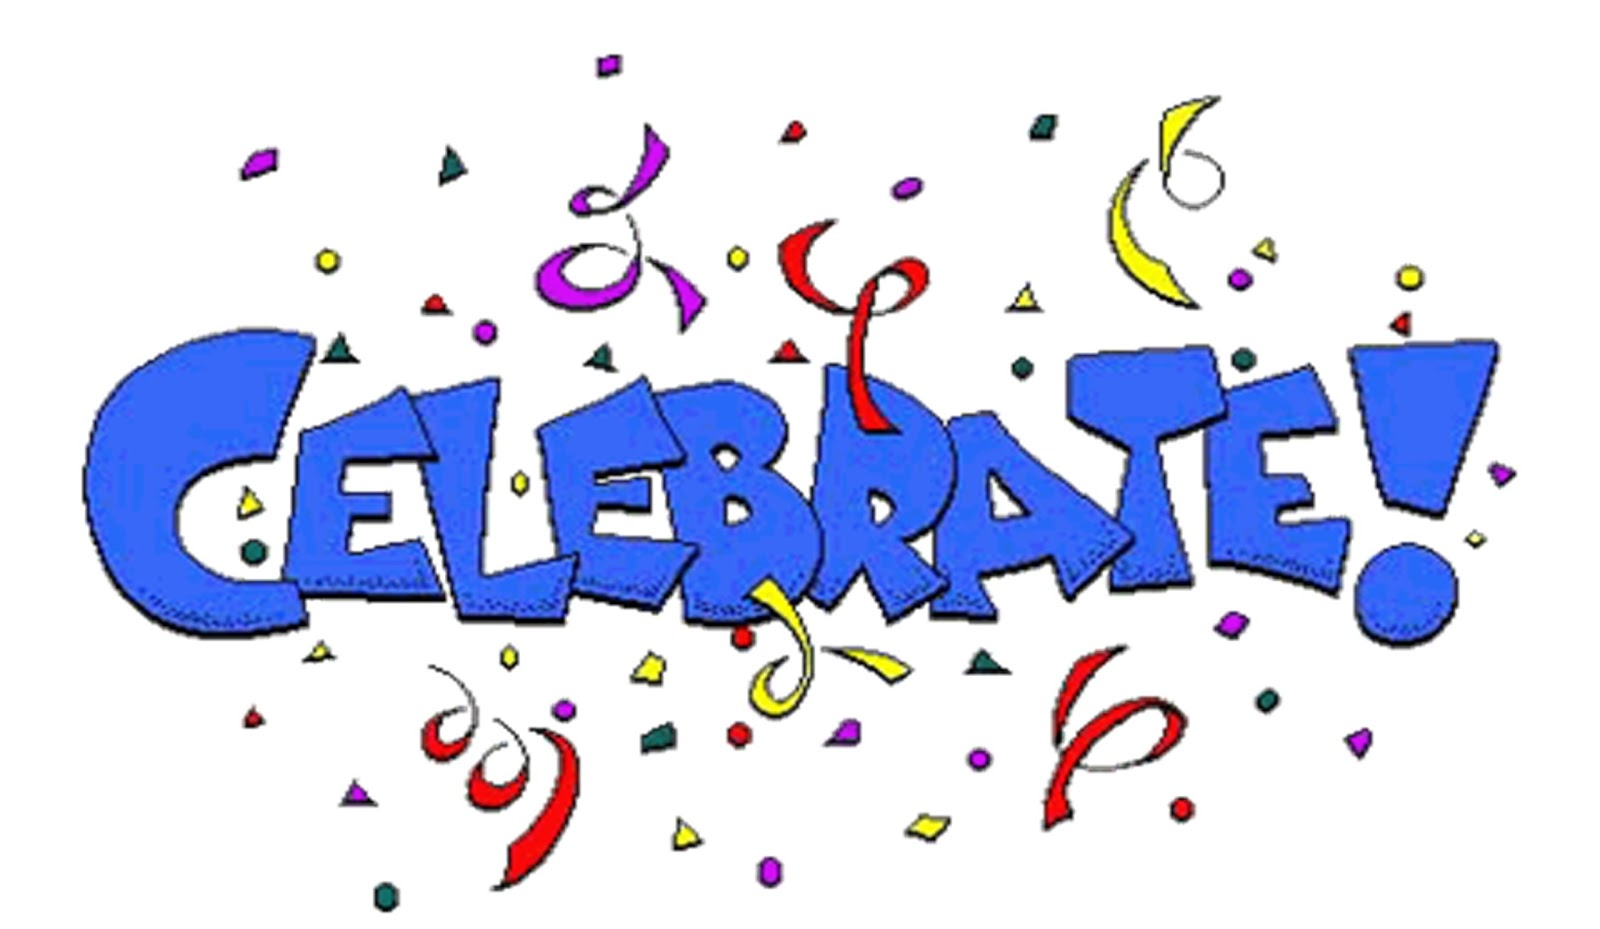 Celebrate clipart classroom. Working the a celebration